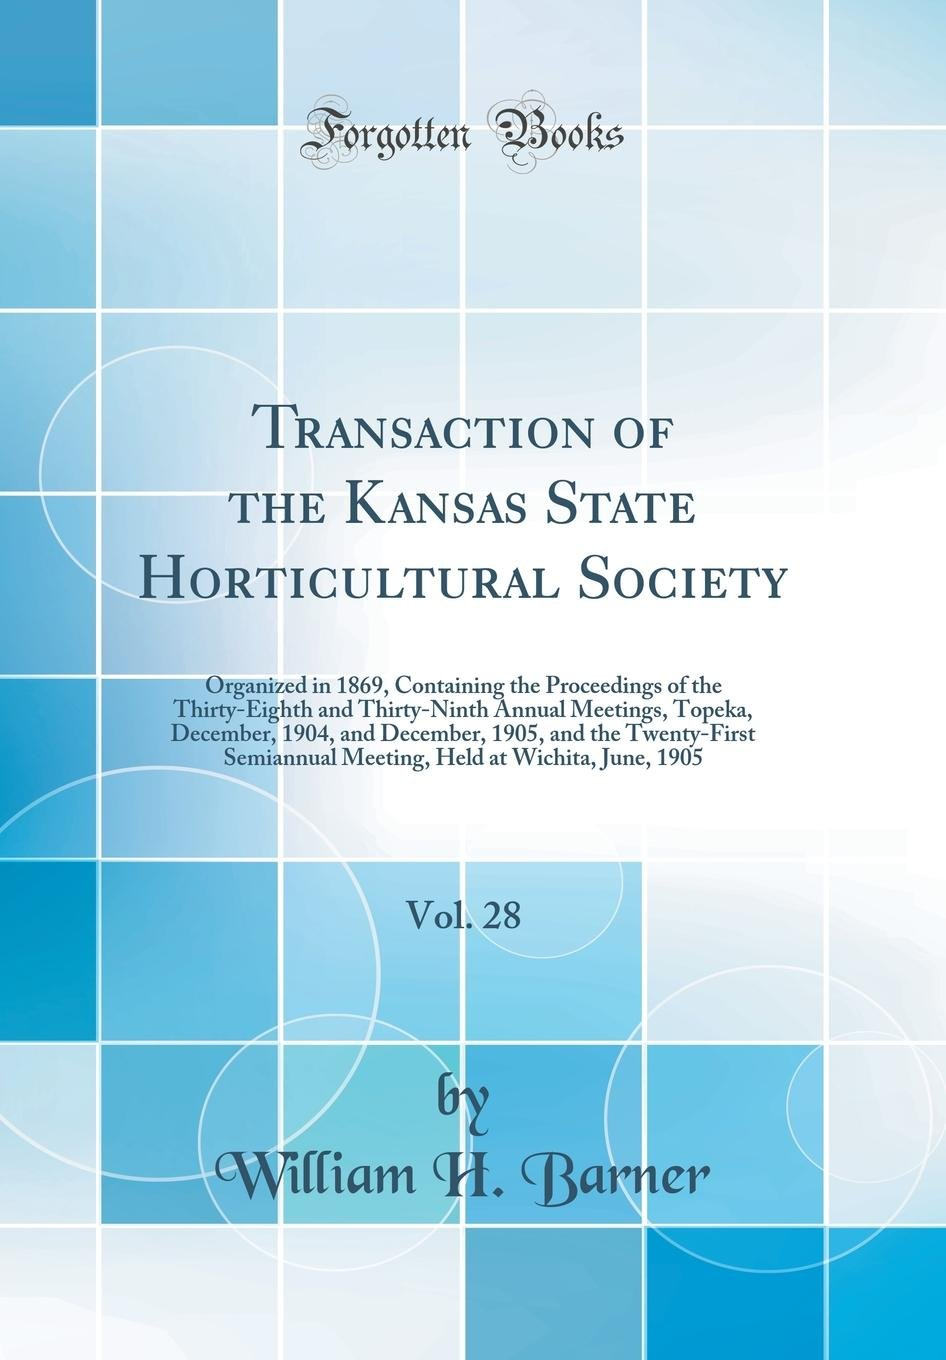 Download Transaction of the Kansas State Horticultural Society, Vol. 28: Organized in 1869, Containing the Proceedings of the Thirty-Eighth and Thirty-Ninth ... and the Twenty-First Semiannual Meeting, Held PDF